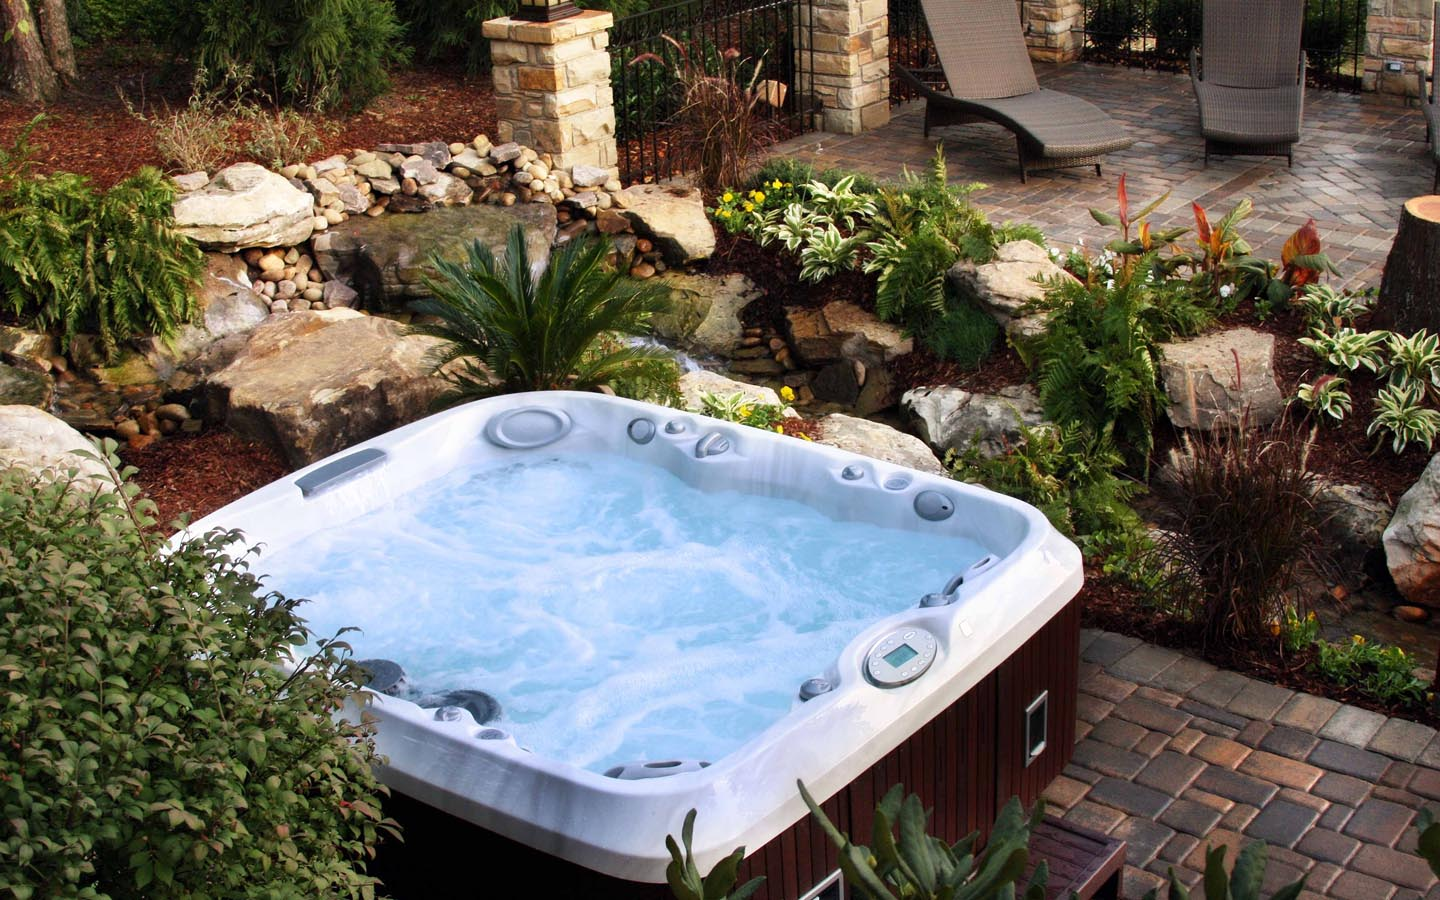 Jacuzzi Pool Ideas Jacuzzi Hot Tubs Outdoor Pool Design Ideas